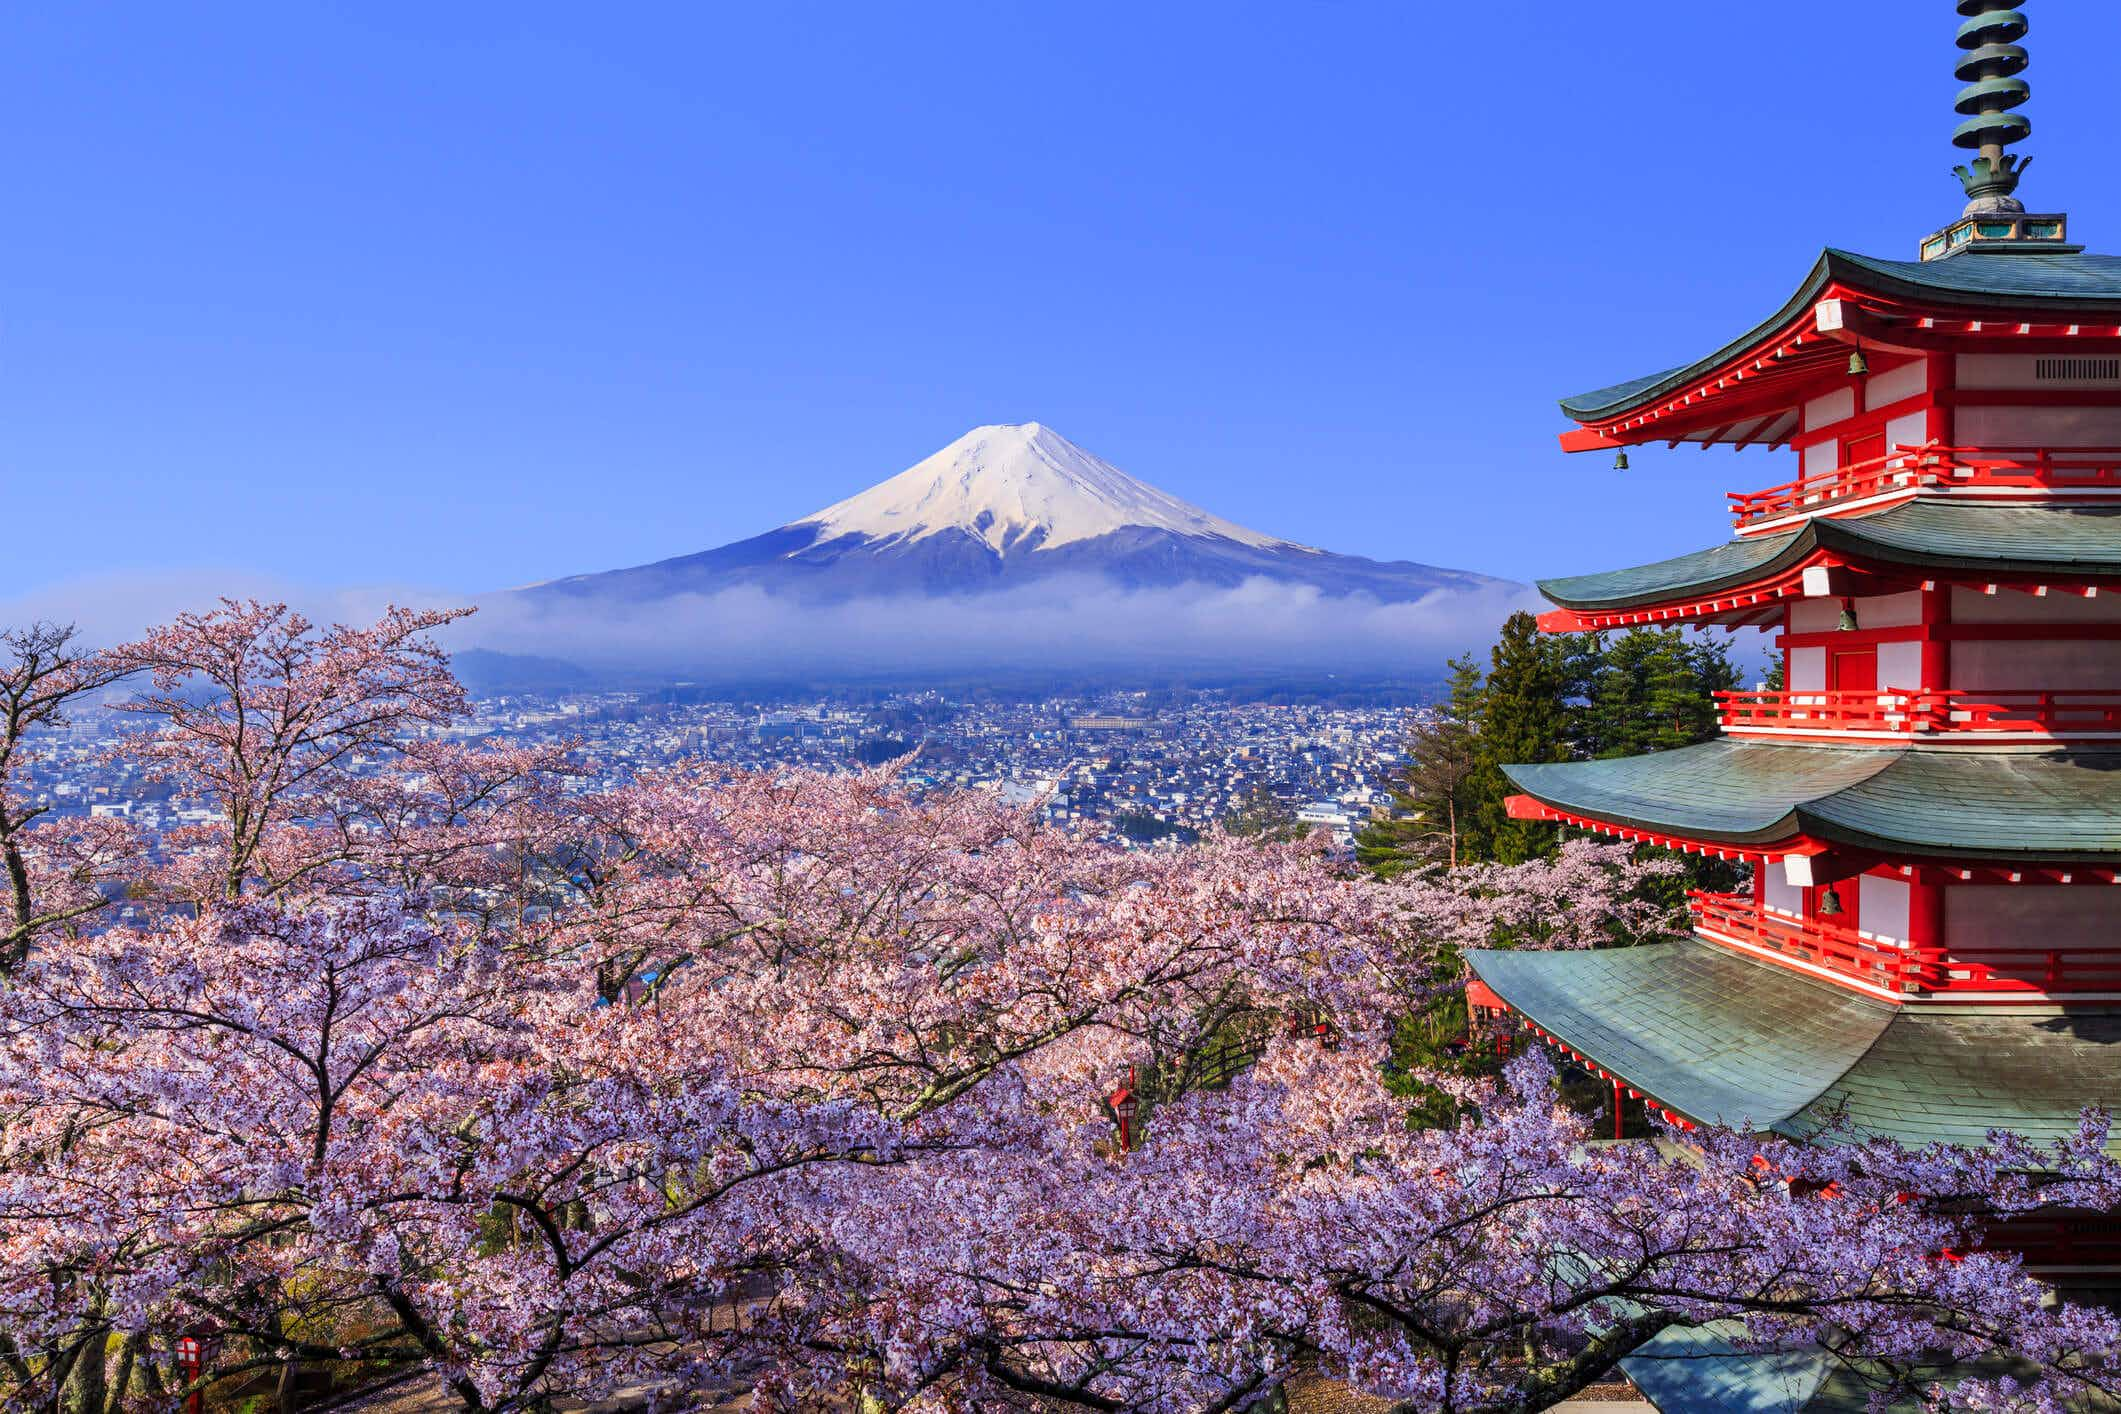 How bad weather can get you a free hotel stay if you don't get to see Mount Fuji